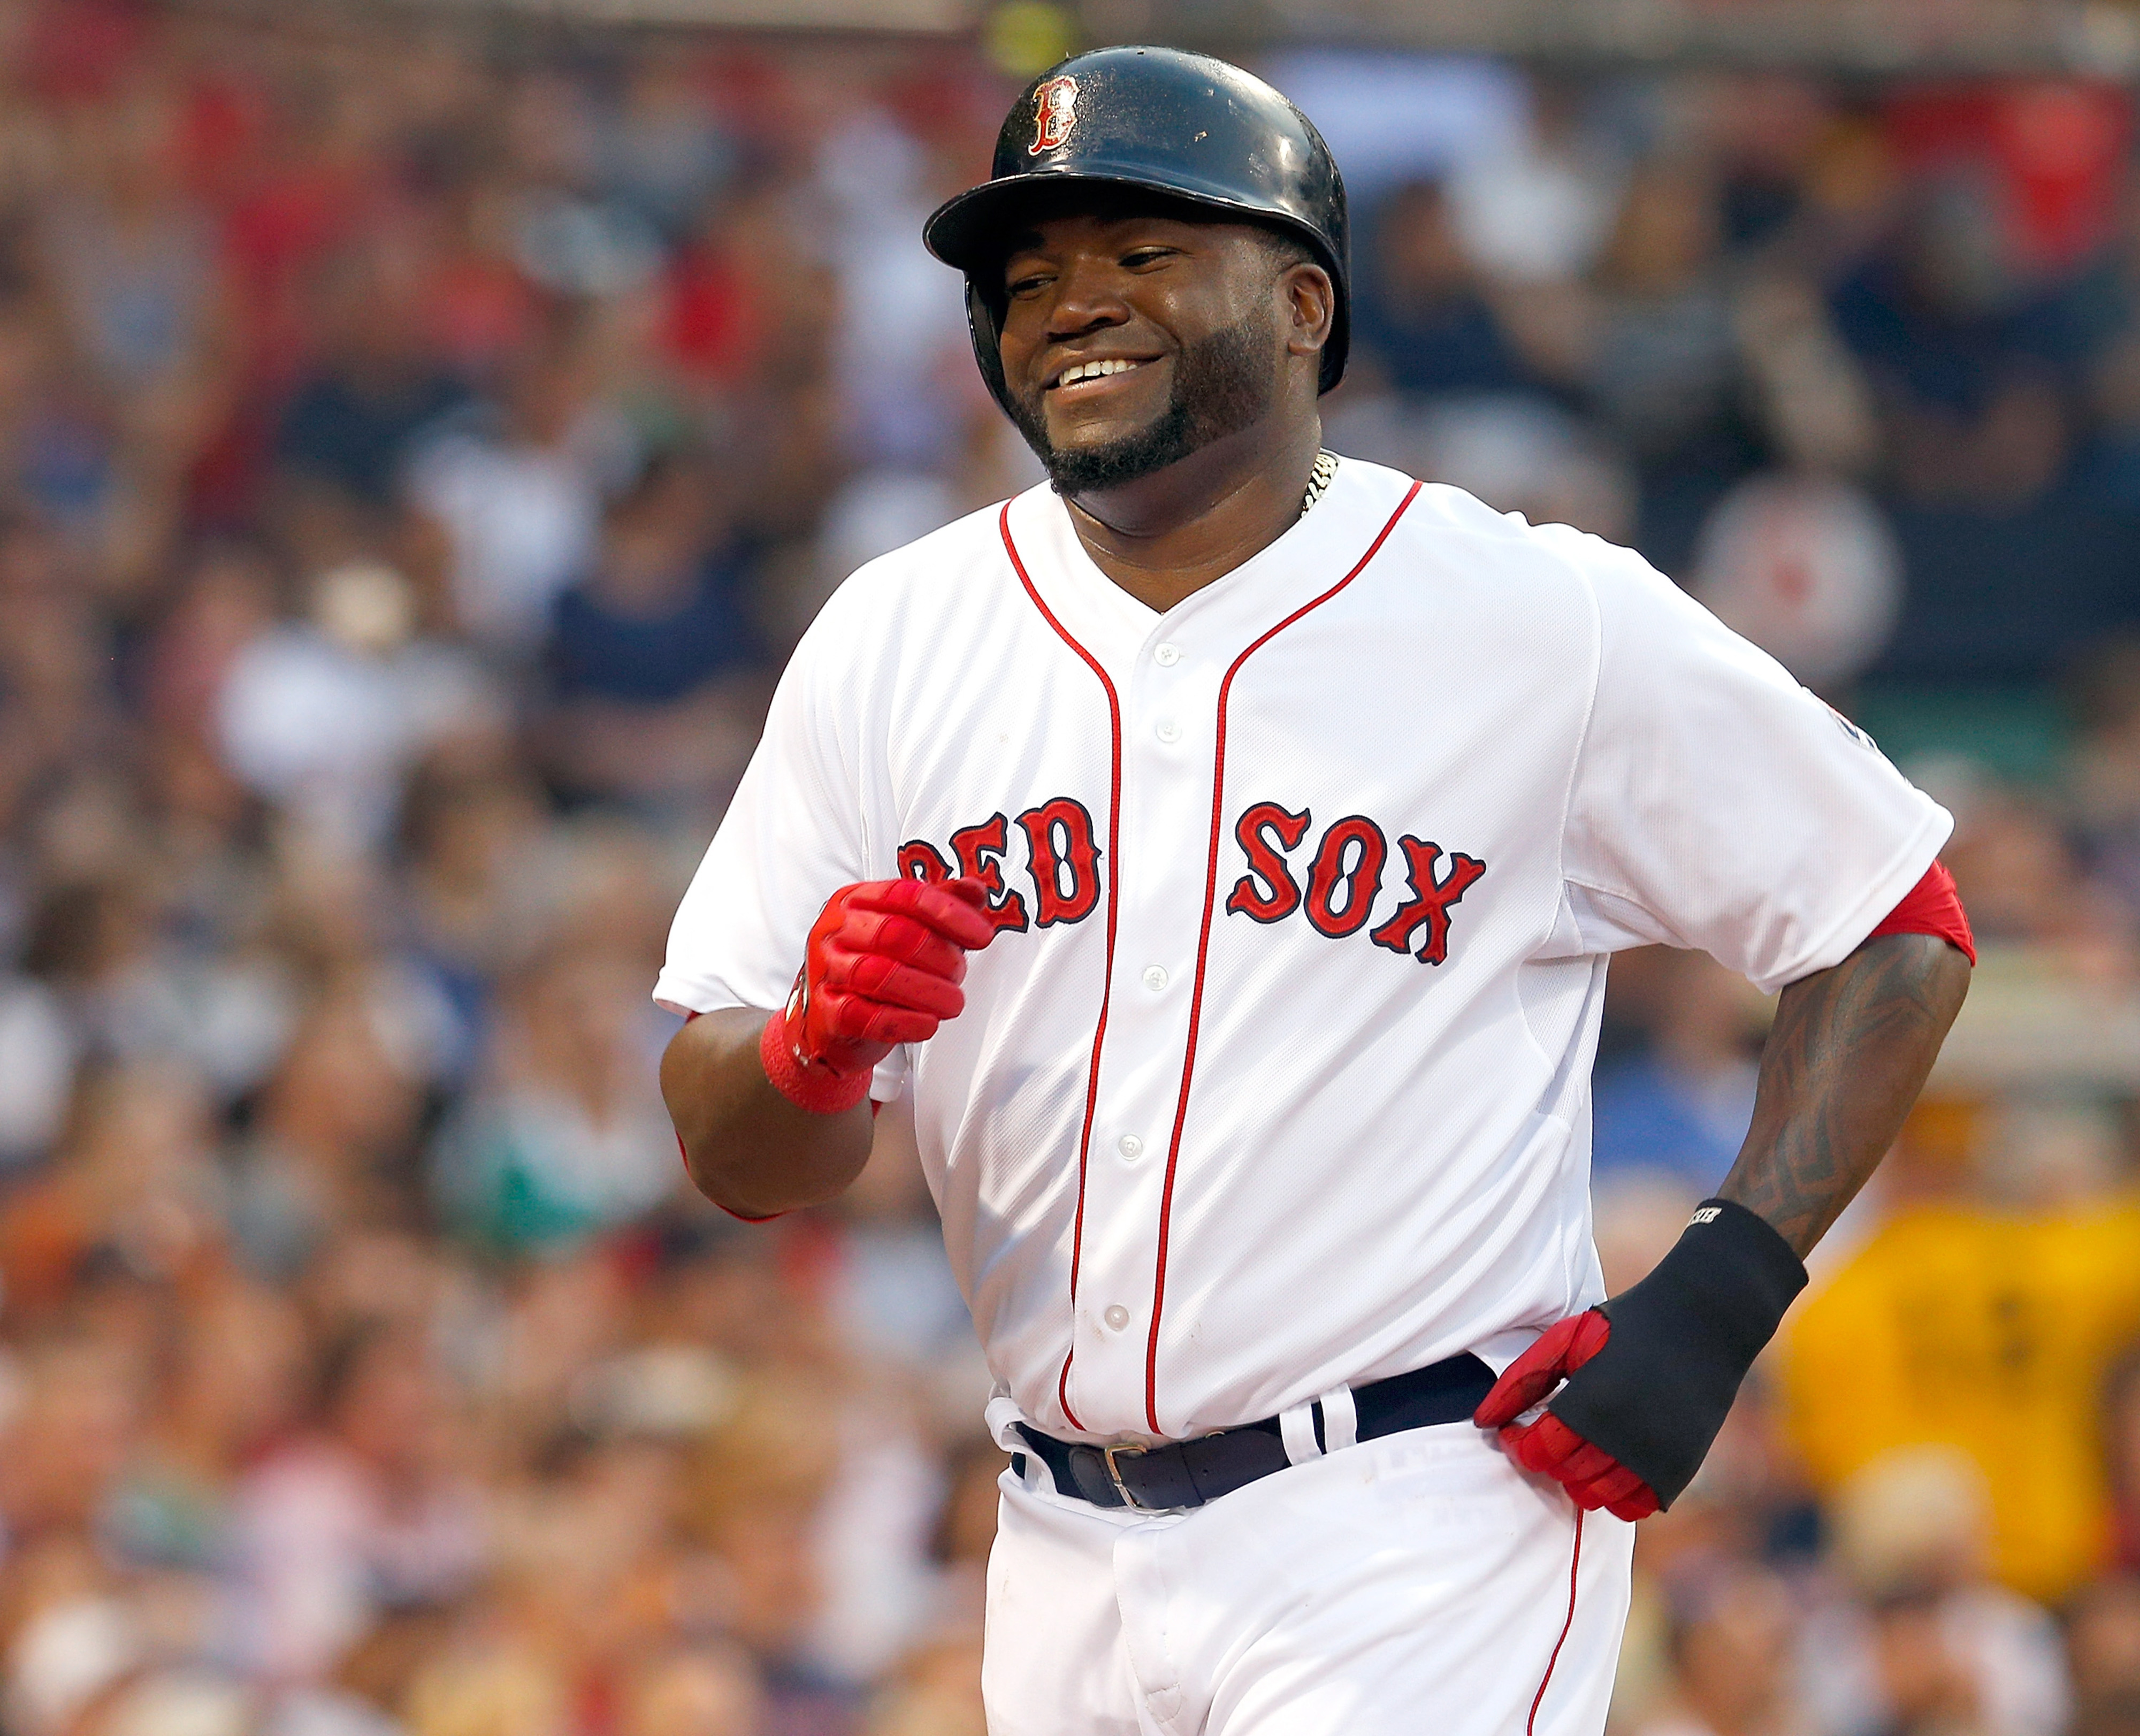 Is David Ortiz the greatest DH ever?